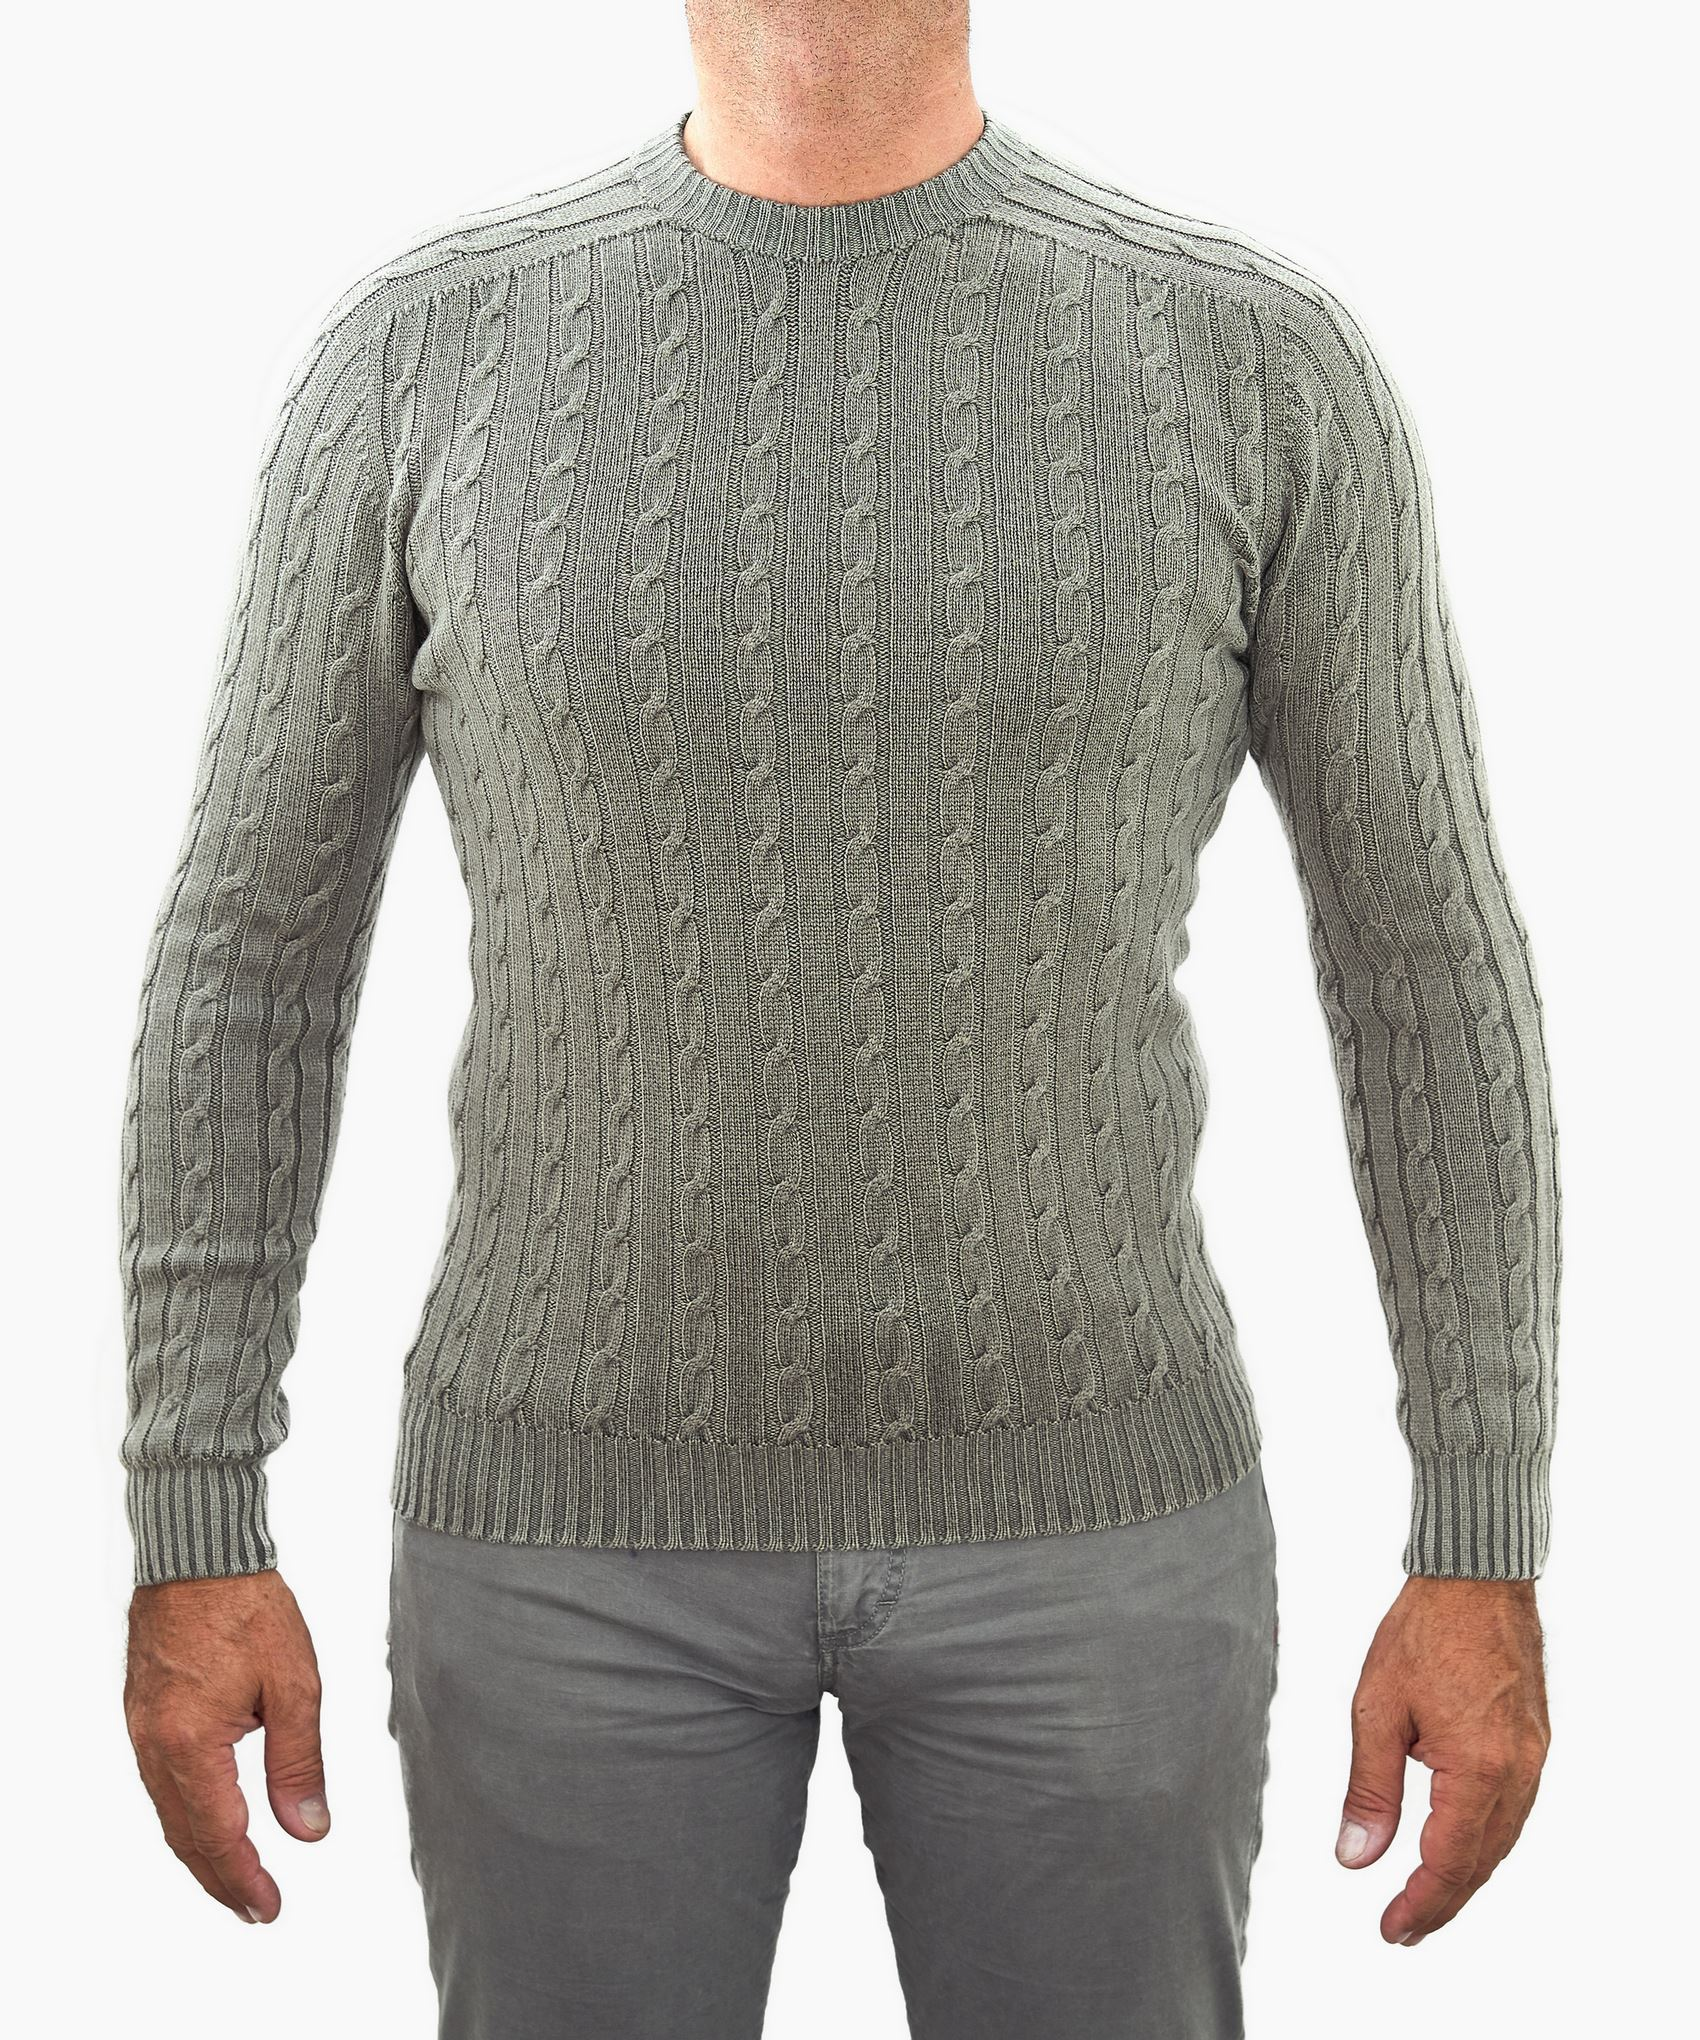 Picture of Braided crewneck sweater